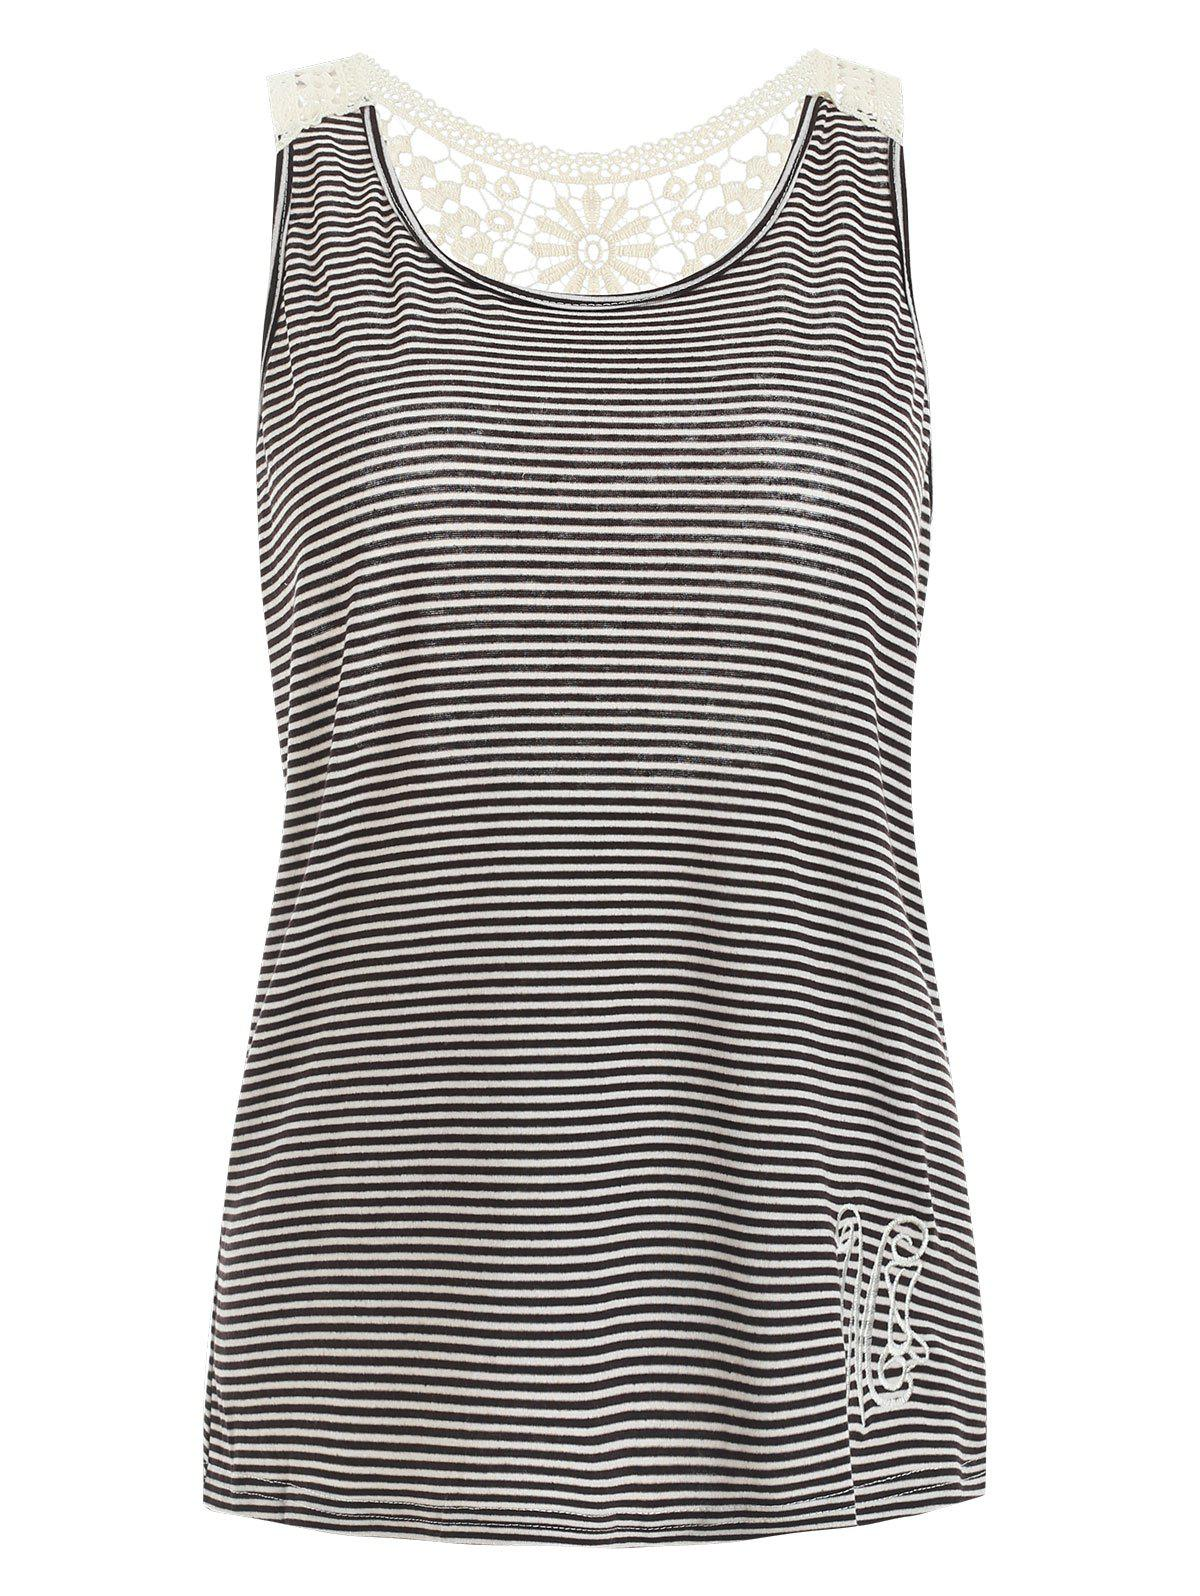 Stylish Scoop Neck Lace Splicing Striped Embroidery Tank Top For Women, Gray